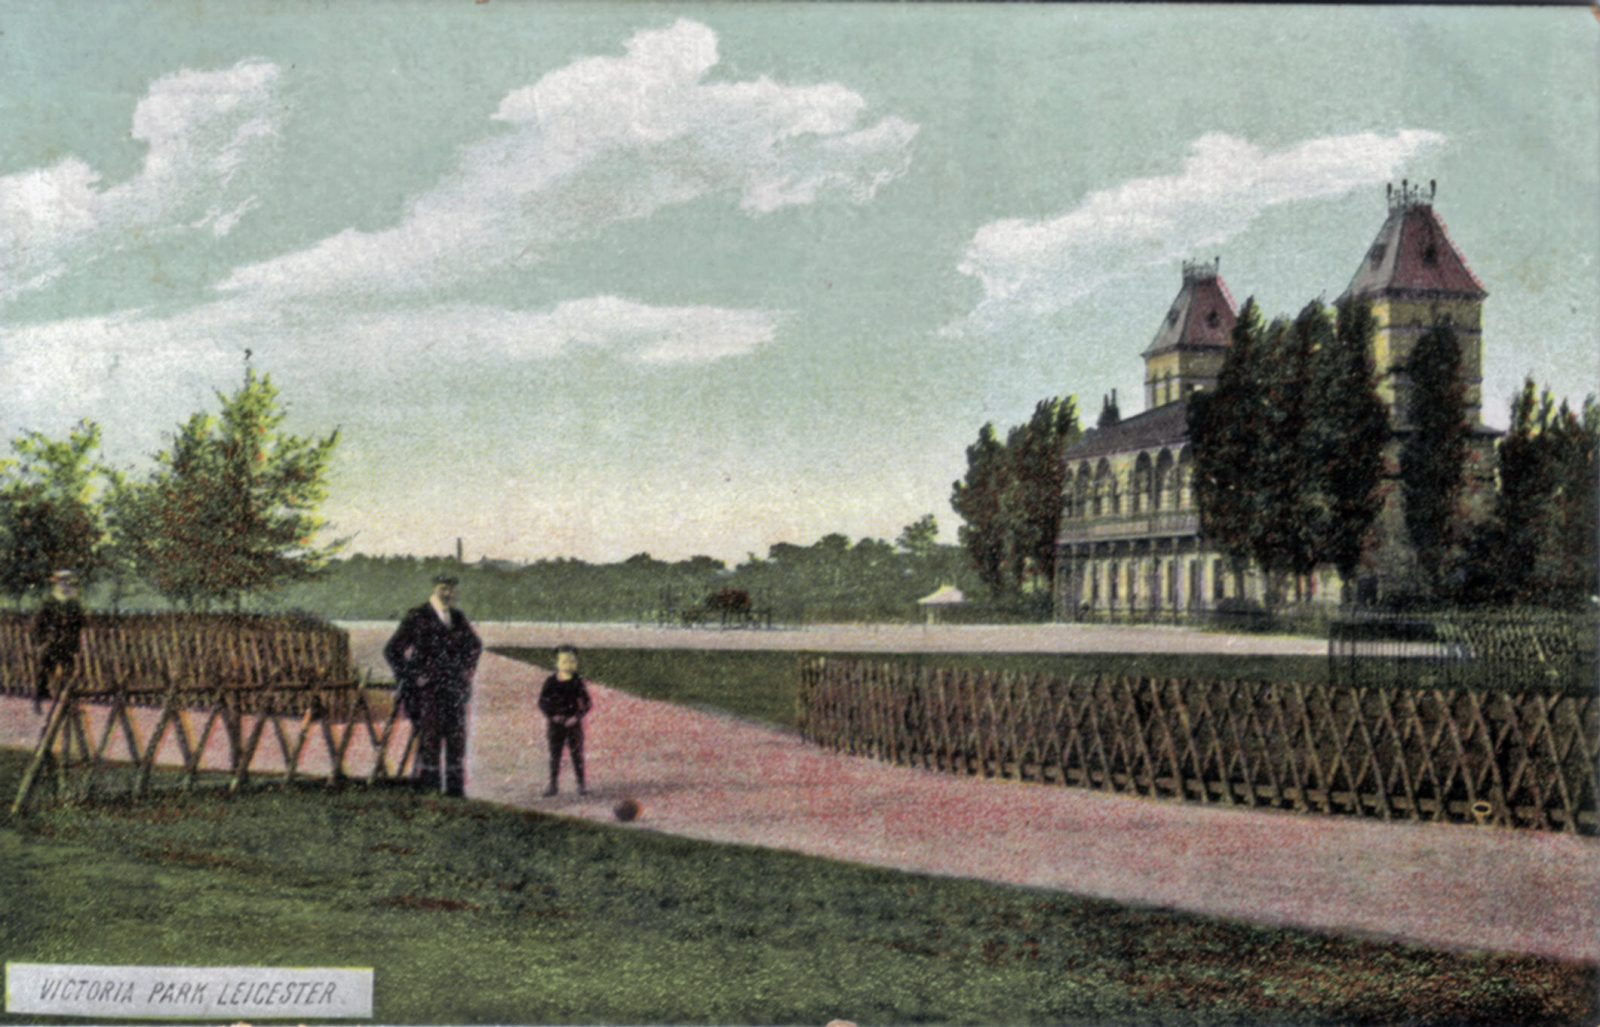 Victoria Park, Leicester. 1901-1920: Pavilion with man and boy. Rustic fencing. (File:1071)